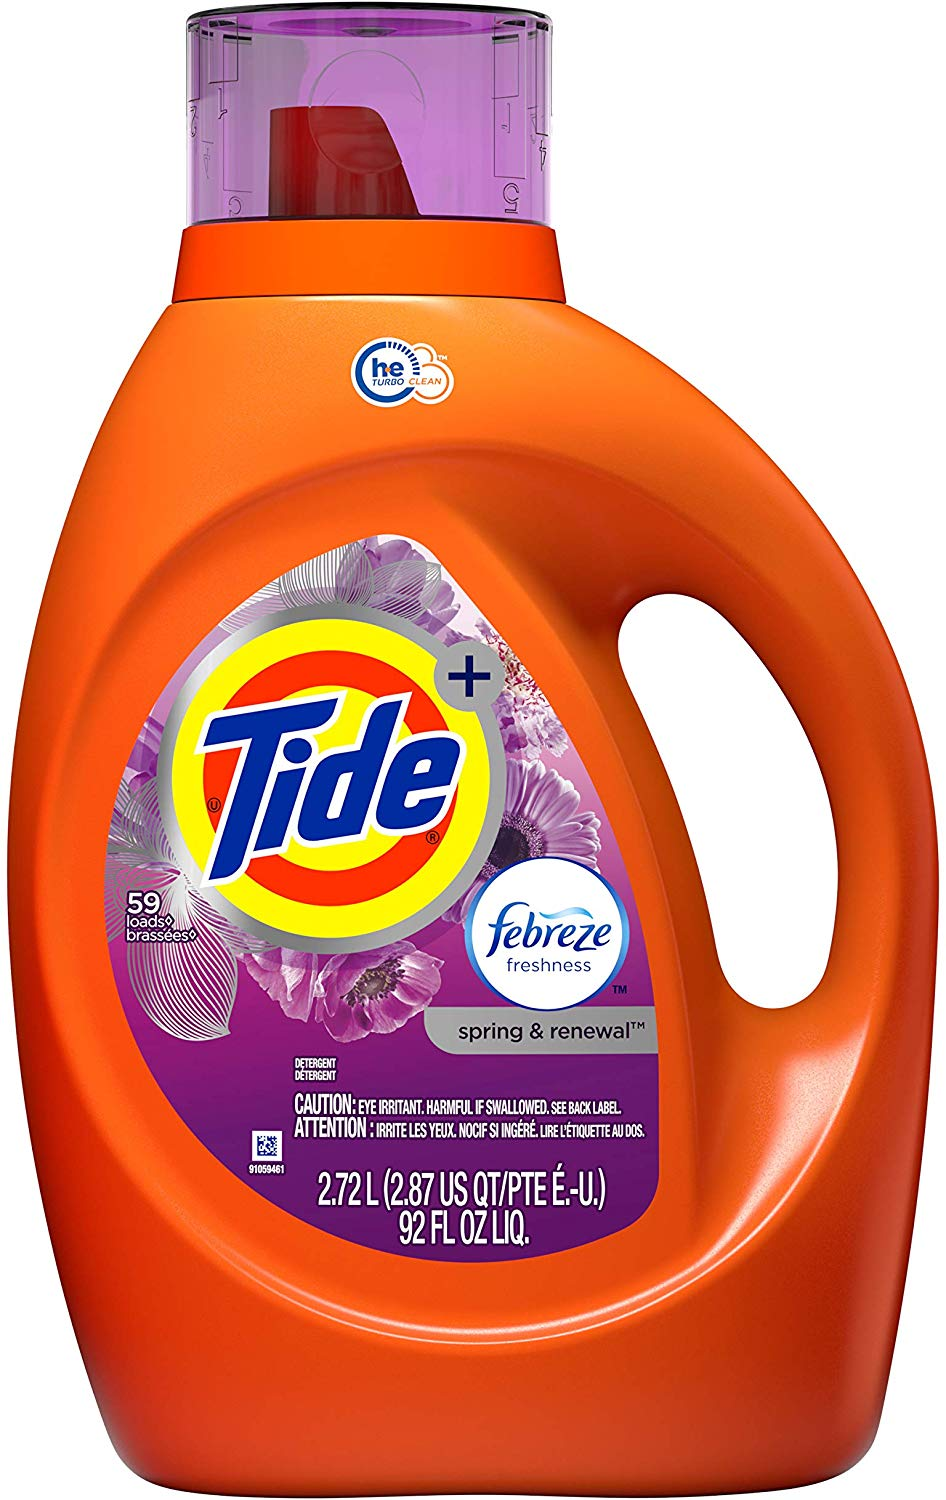 Tide Plus Febreze Freshness 2.72L 90FL OZ